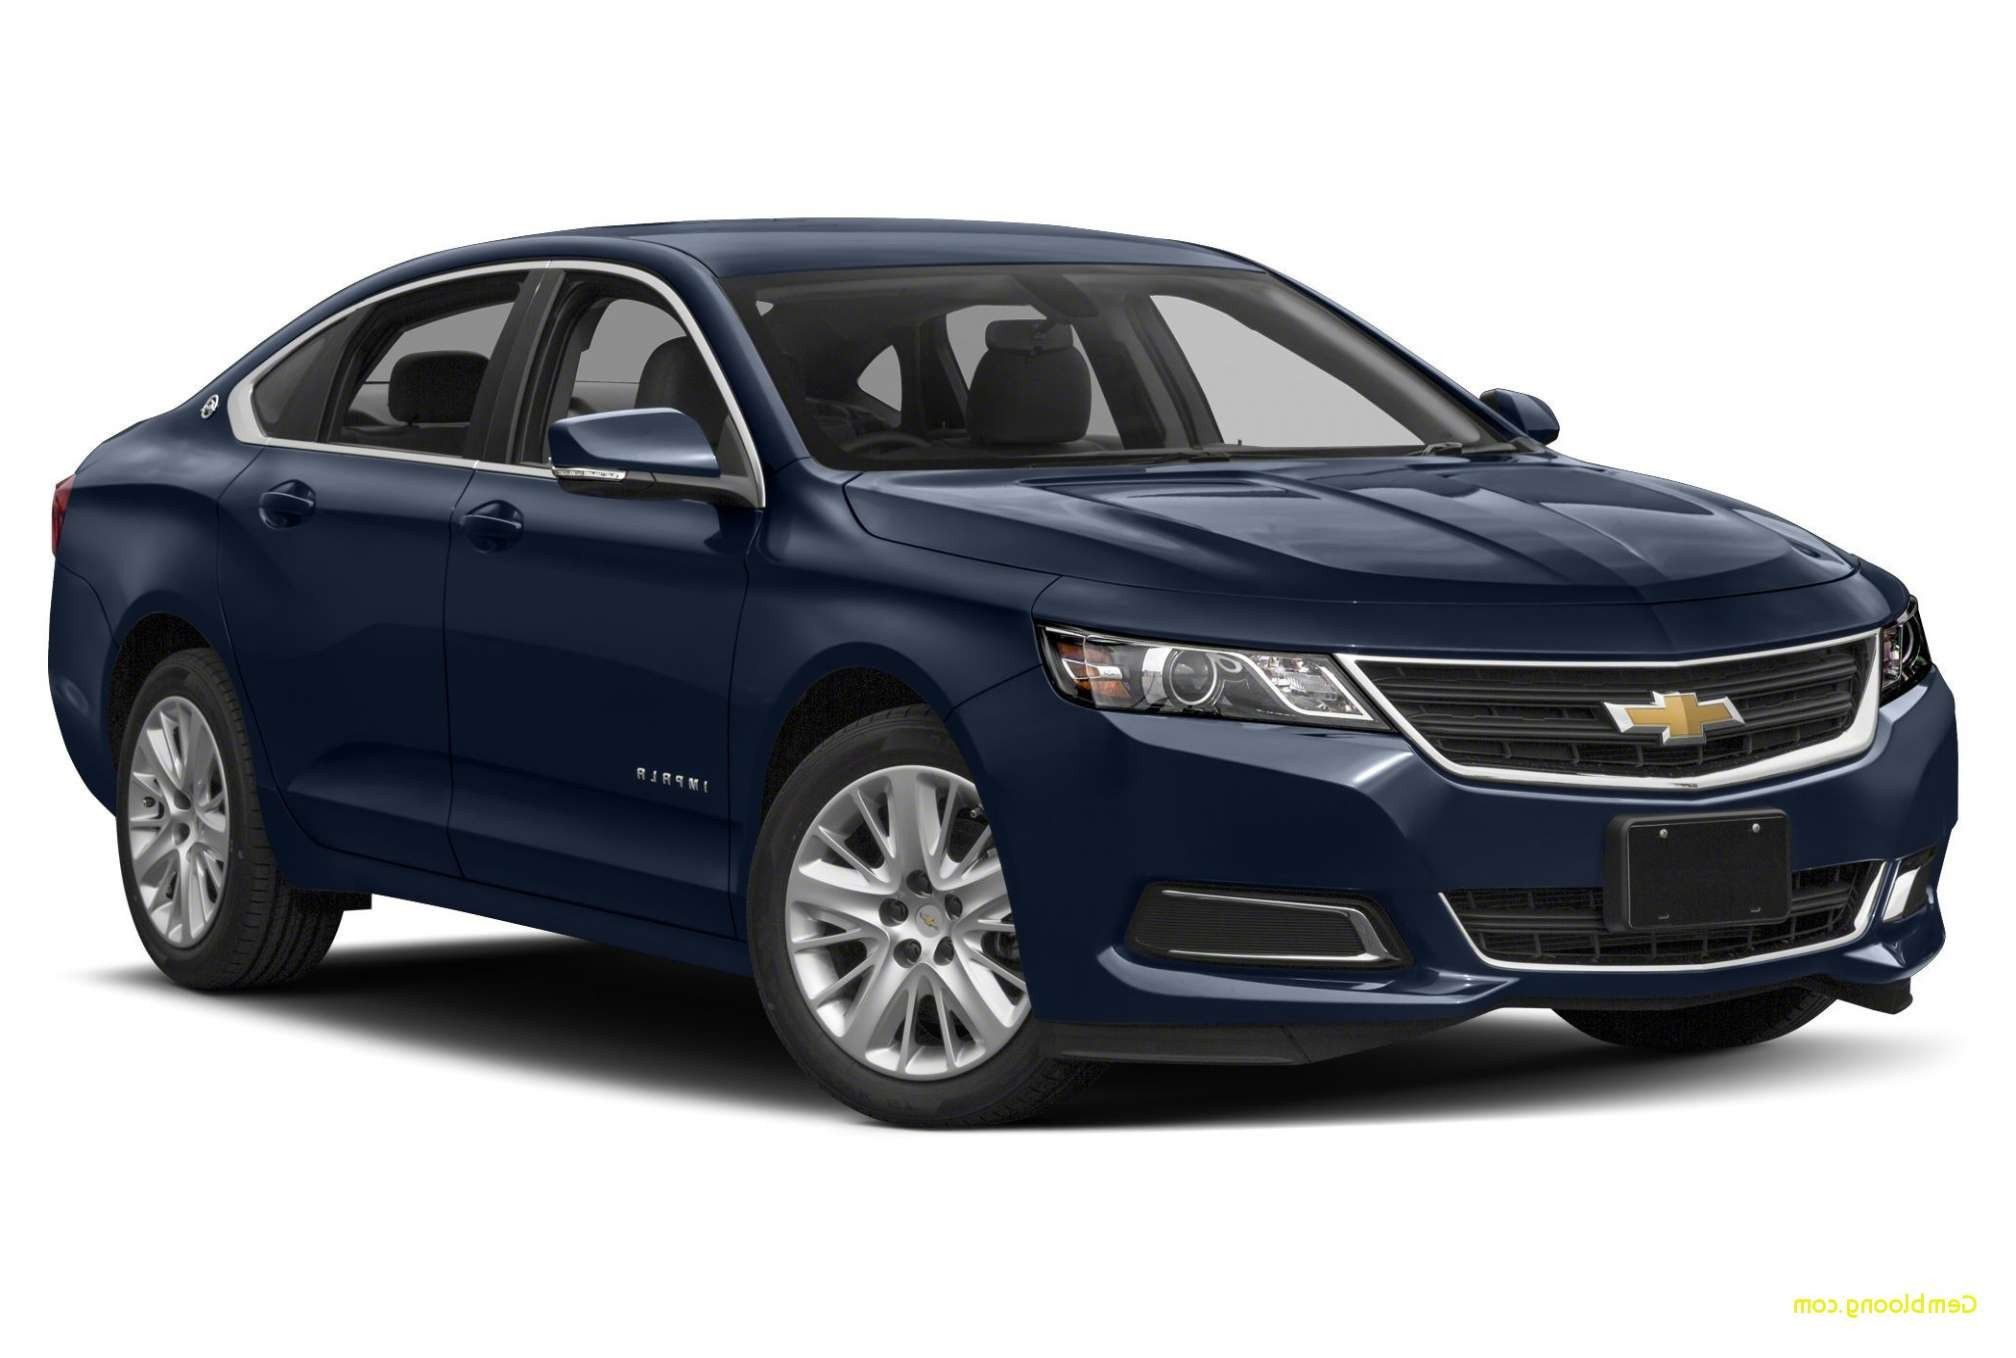 2020 Chevrolet Impala Check More At Http Www Cars1 Club 2019 01